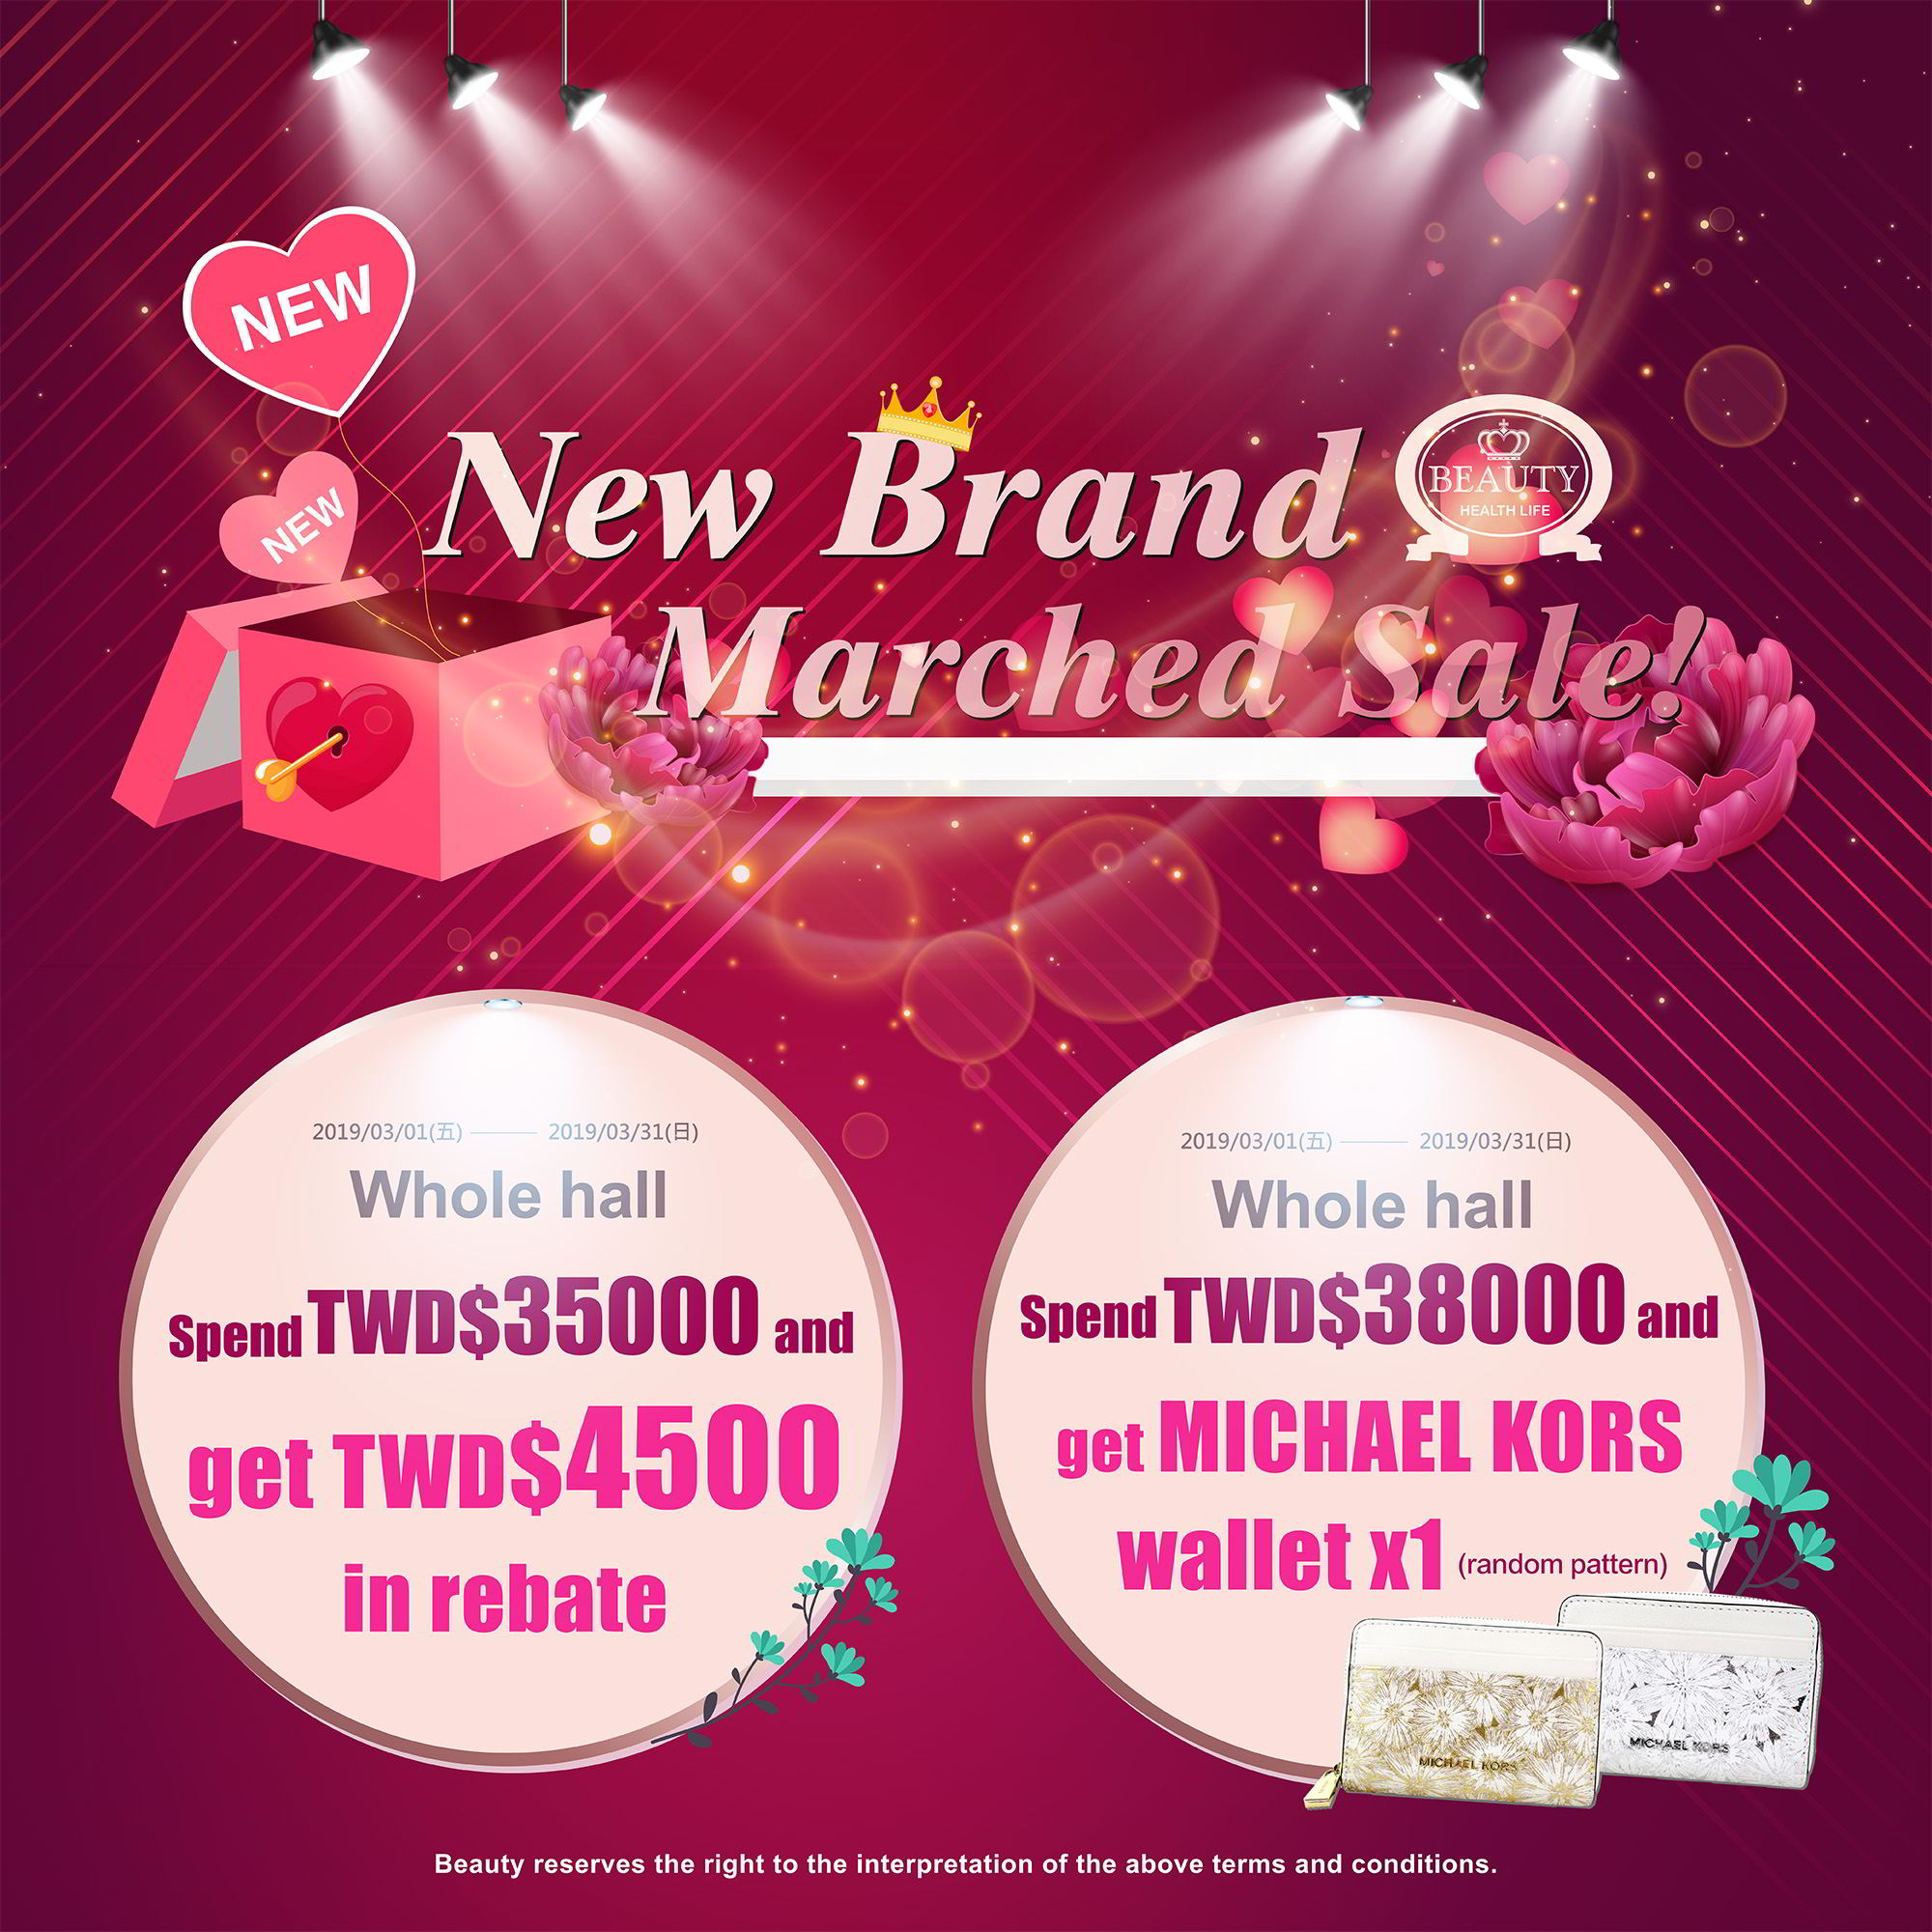 New Brand Marched Sale!EDM.jpg